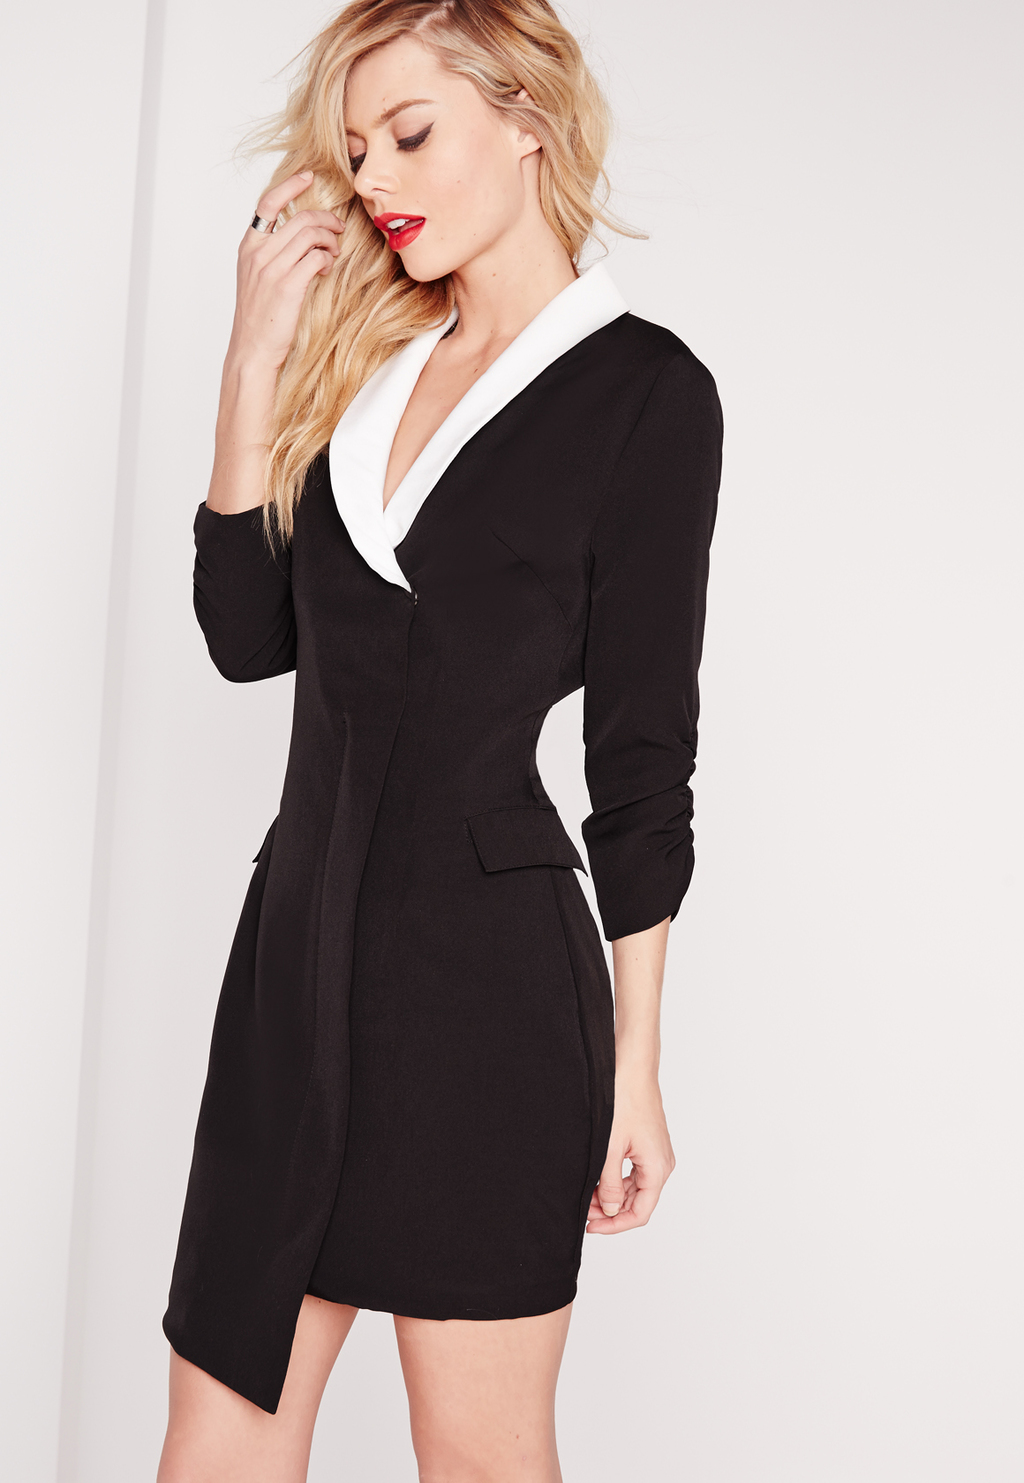 Crepe Ruched Sleeve Blazer Dress Monochrome, Black - style: shift; neckline: v-neck; fit: tailored/fitted; pattern: plain; hip detail: draws attention to hips; secondary colour: white; predominant colour: black; occasions: evening; length: just above the knee; fibres: polyester/polyamide - stretch; sleeve length: 3/4 length; sleeve style: standard; trends: monochrome; pattern type: fabric; texture group: other - light to midweight; season: s/s 2016; wardrobe: event